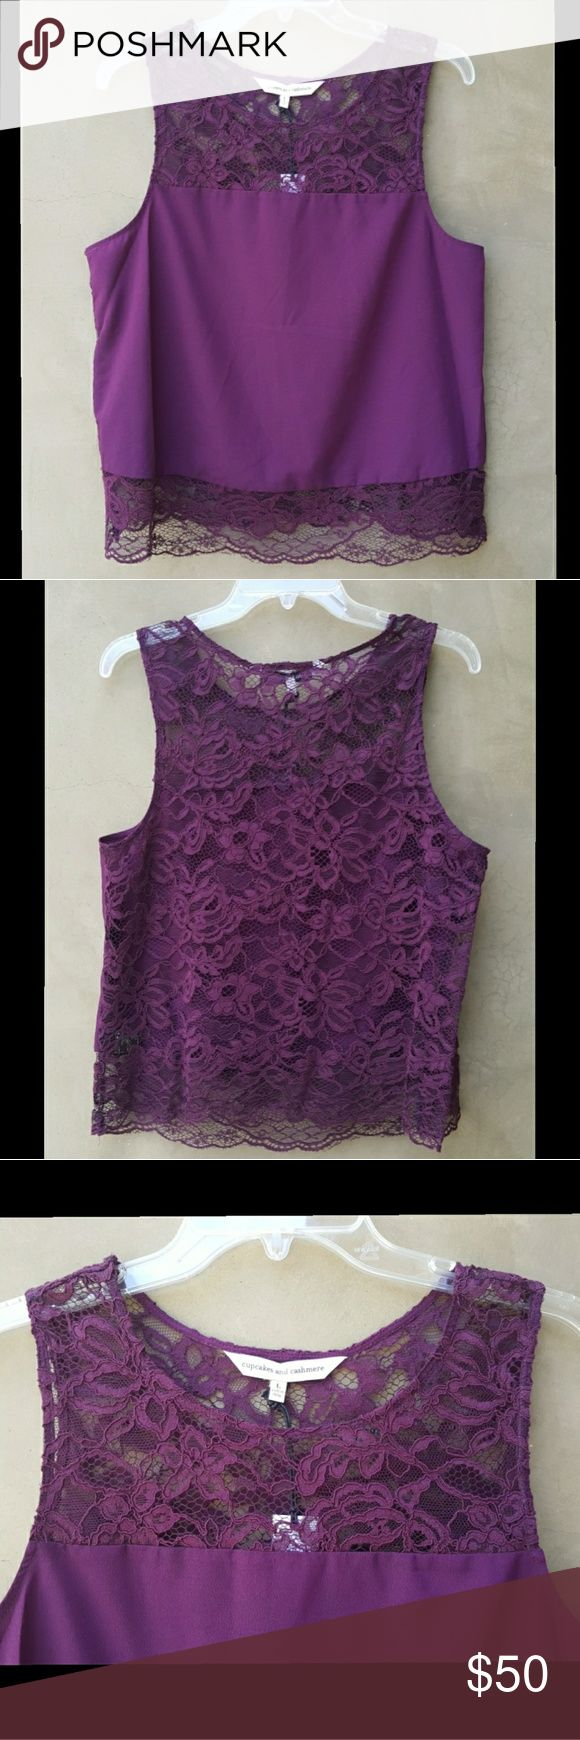 """CUPCAKES & CASHMERE Sheer Lace Tank Top Fun Flirty Size: Large Color: Eggplant (Wine)  Retail Price: $110  Measurements (measurements taken laying flat): Chest 20""""; Waist 20.5""""; Length 23.5""""  Gorgeous sheer crepe and lace tank top. Lace hem. Sleeveless.  71% Cotton, 29% Nylon. Hand wash cold. Cupcakes & Cashmere Tops Tank Tops"""